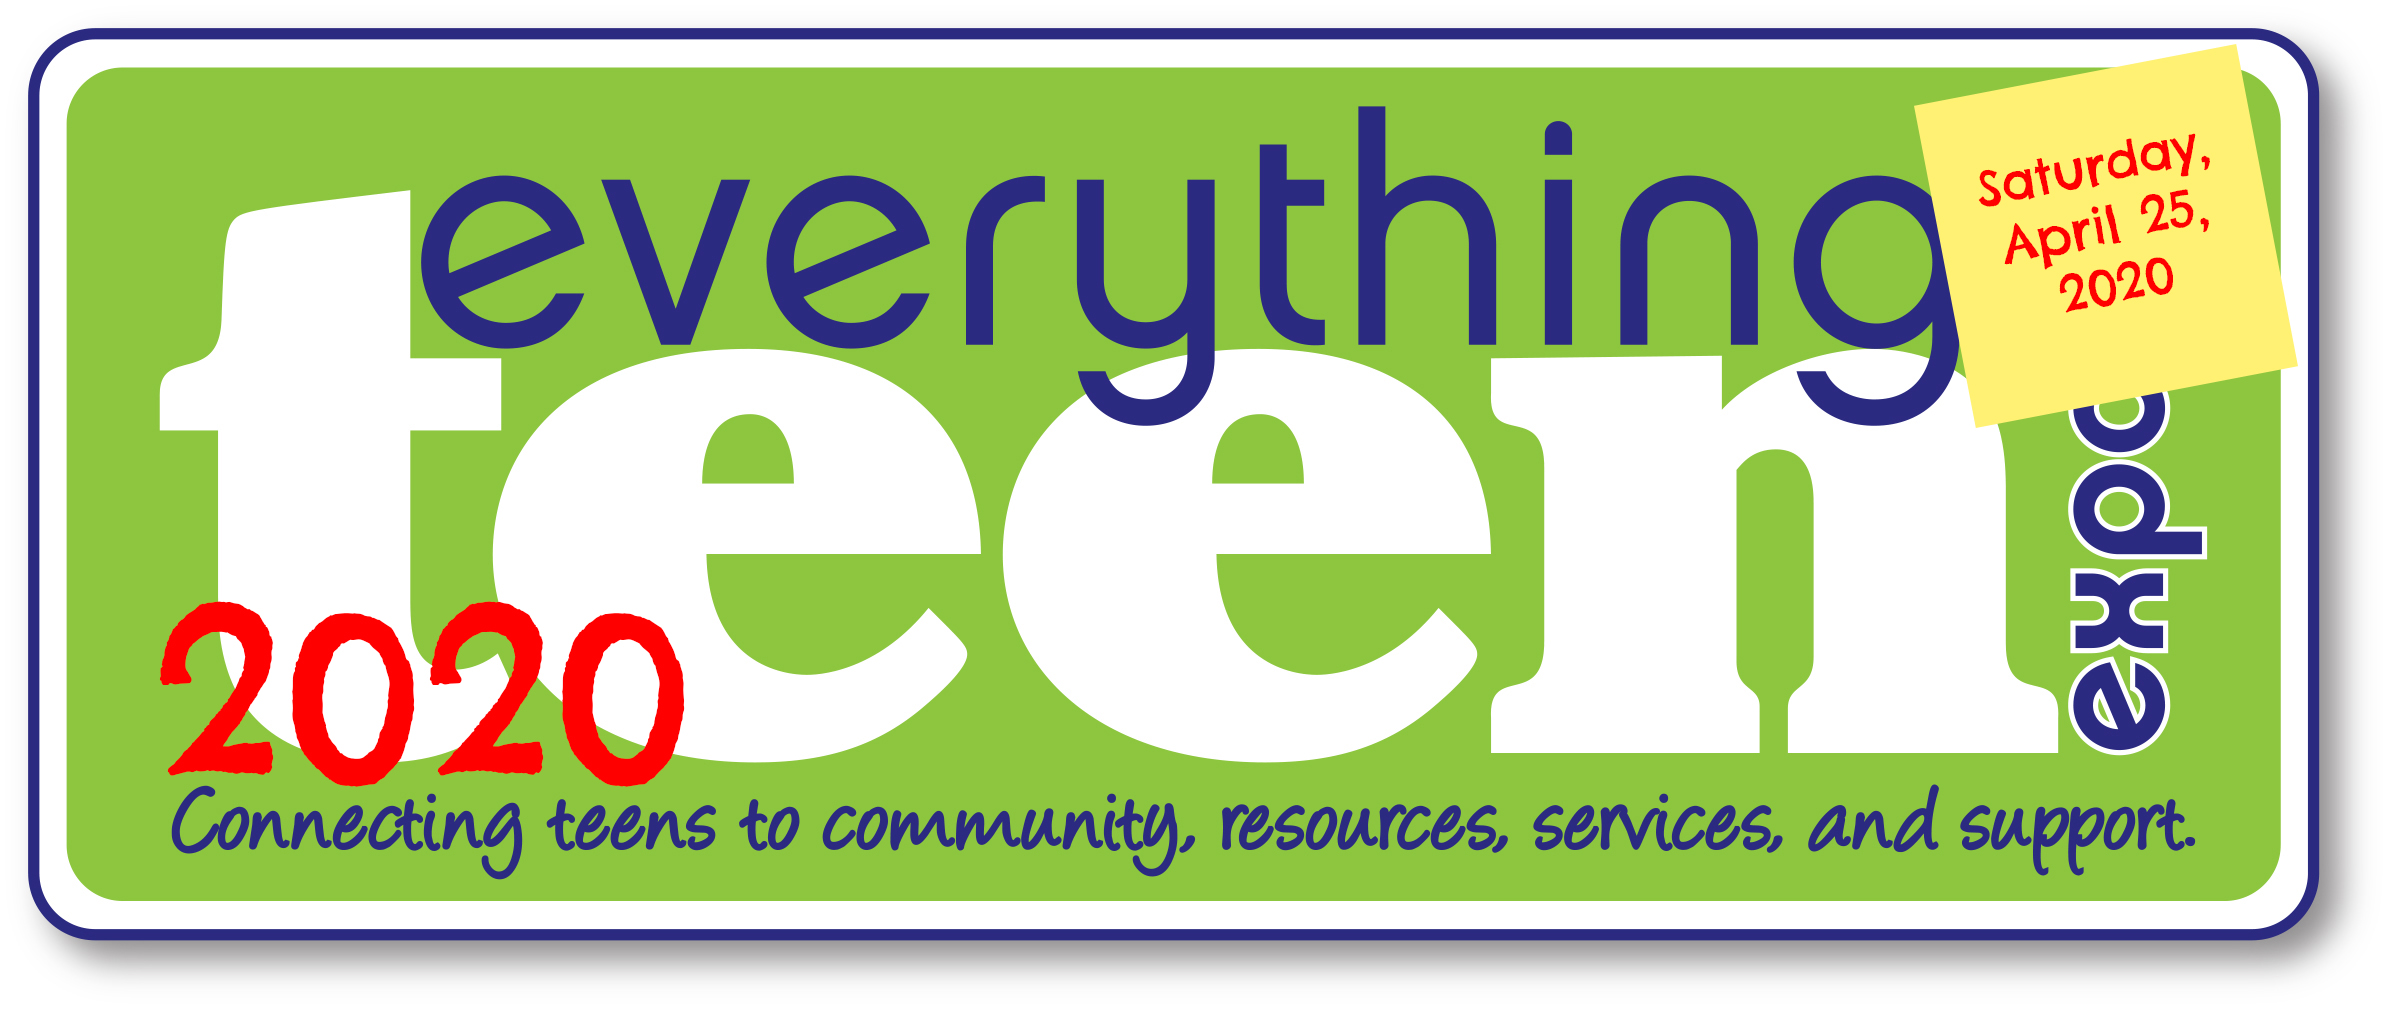 2020 Everything Teen Expo logo--save the date